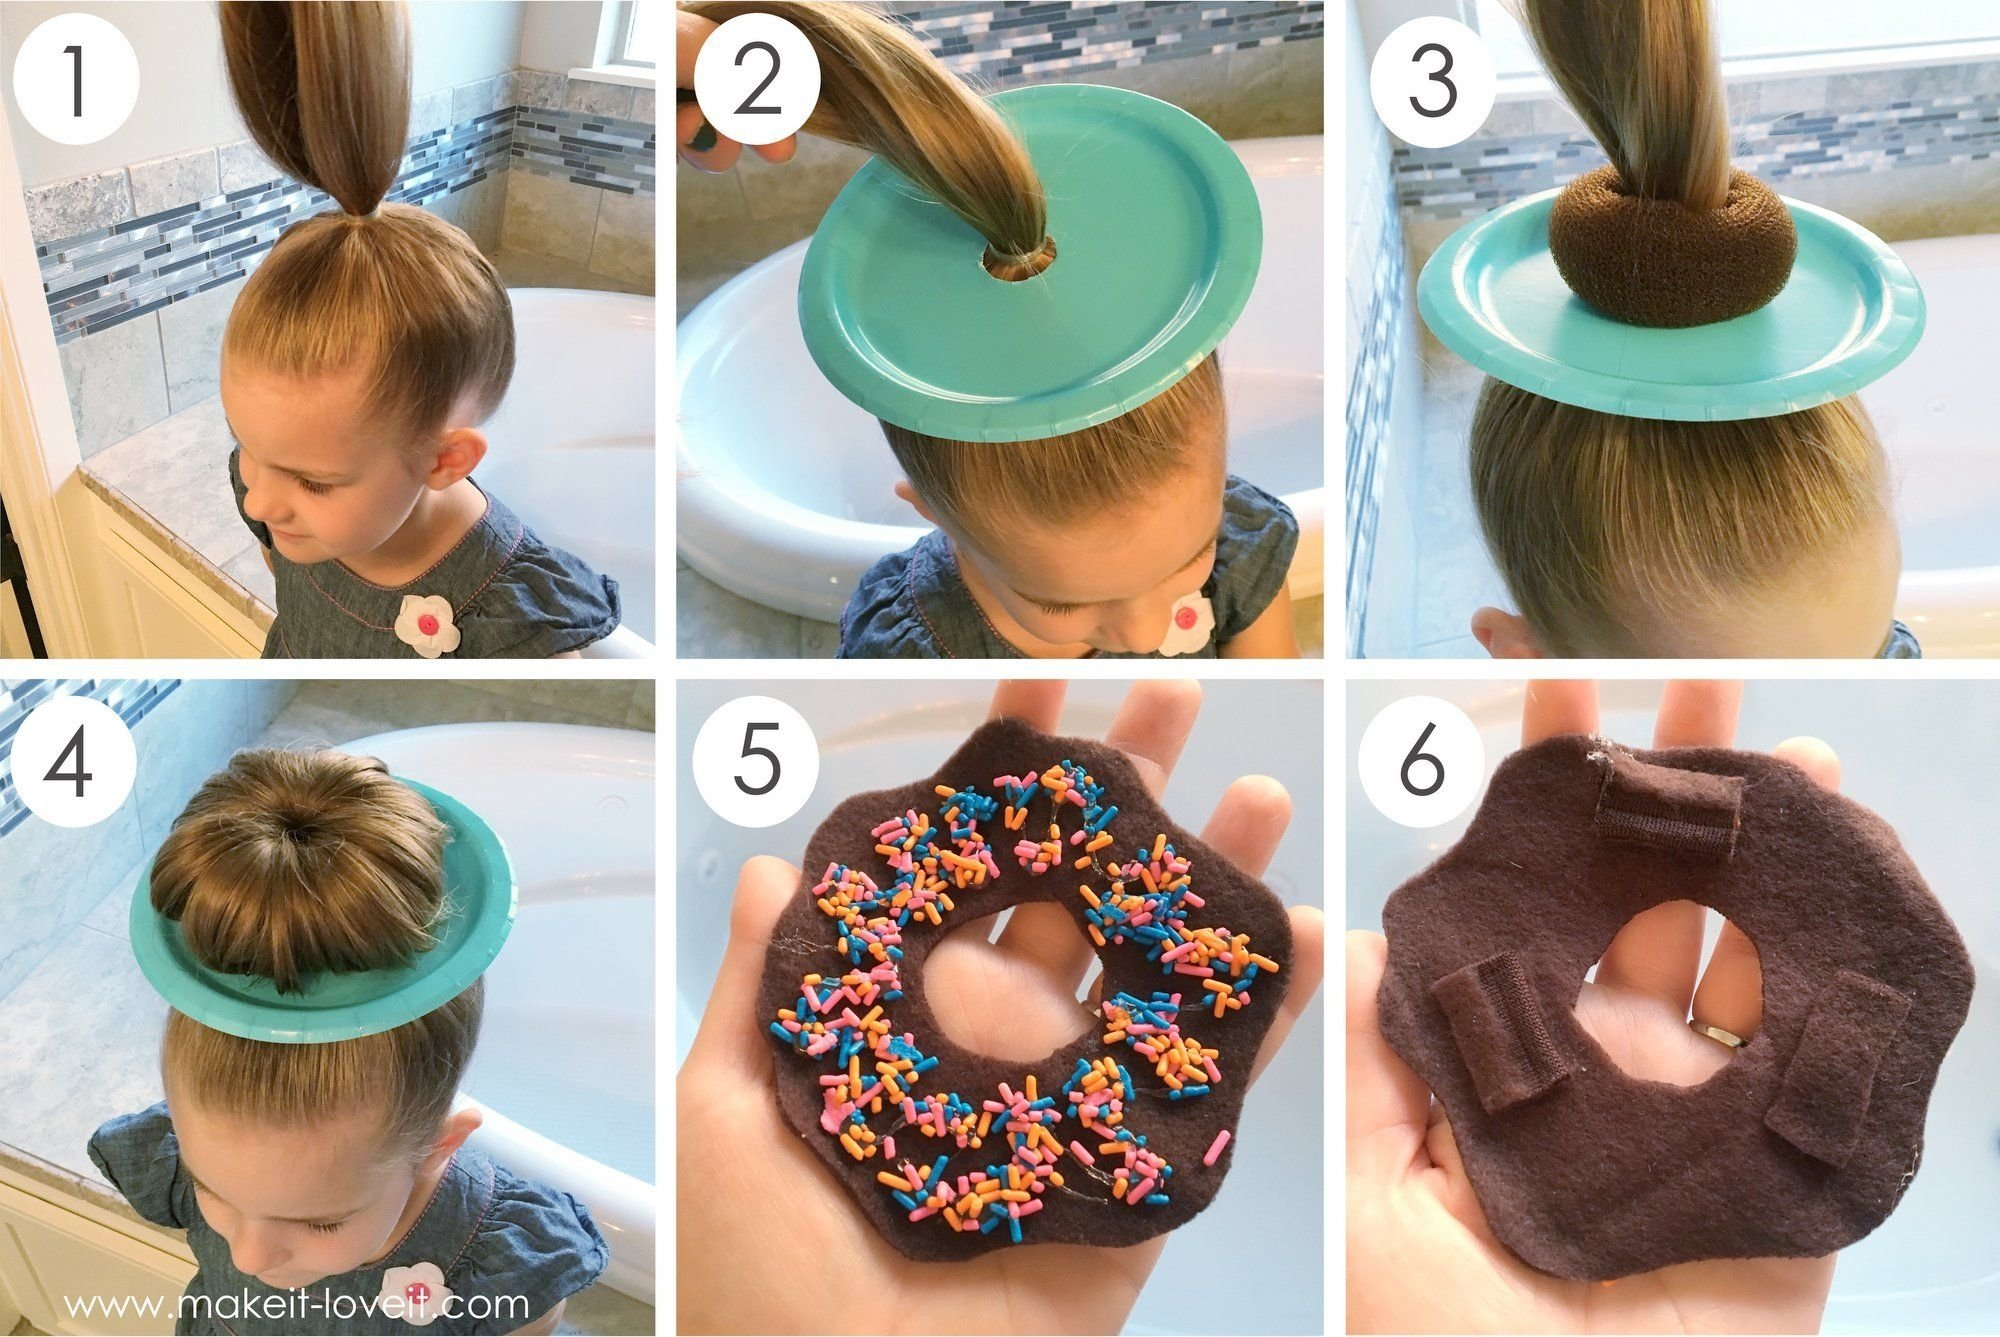 10 Famous Wacky Hair Day Ideas For School 25 clever ideas for wacky hair day at school including 4